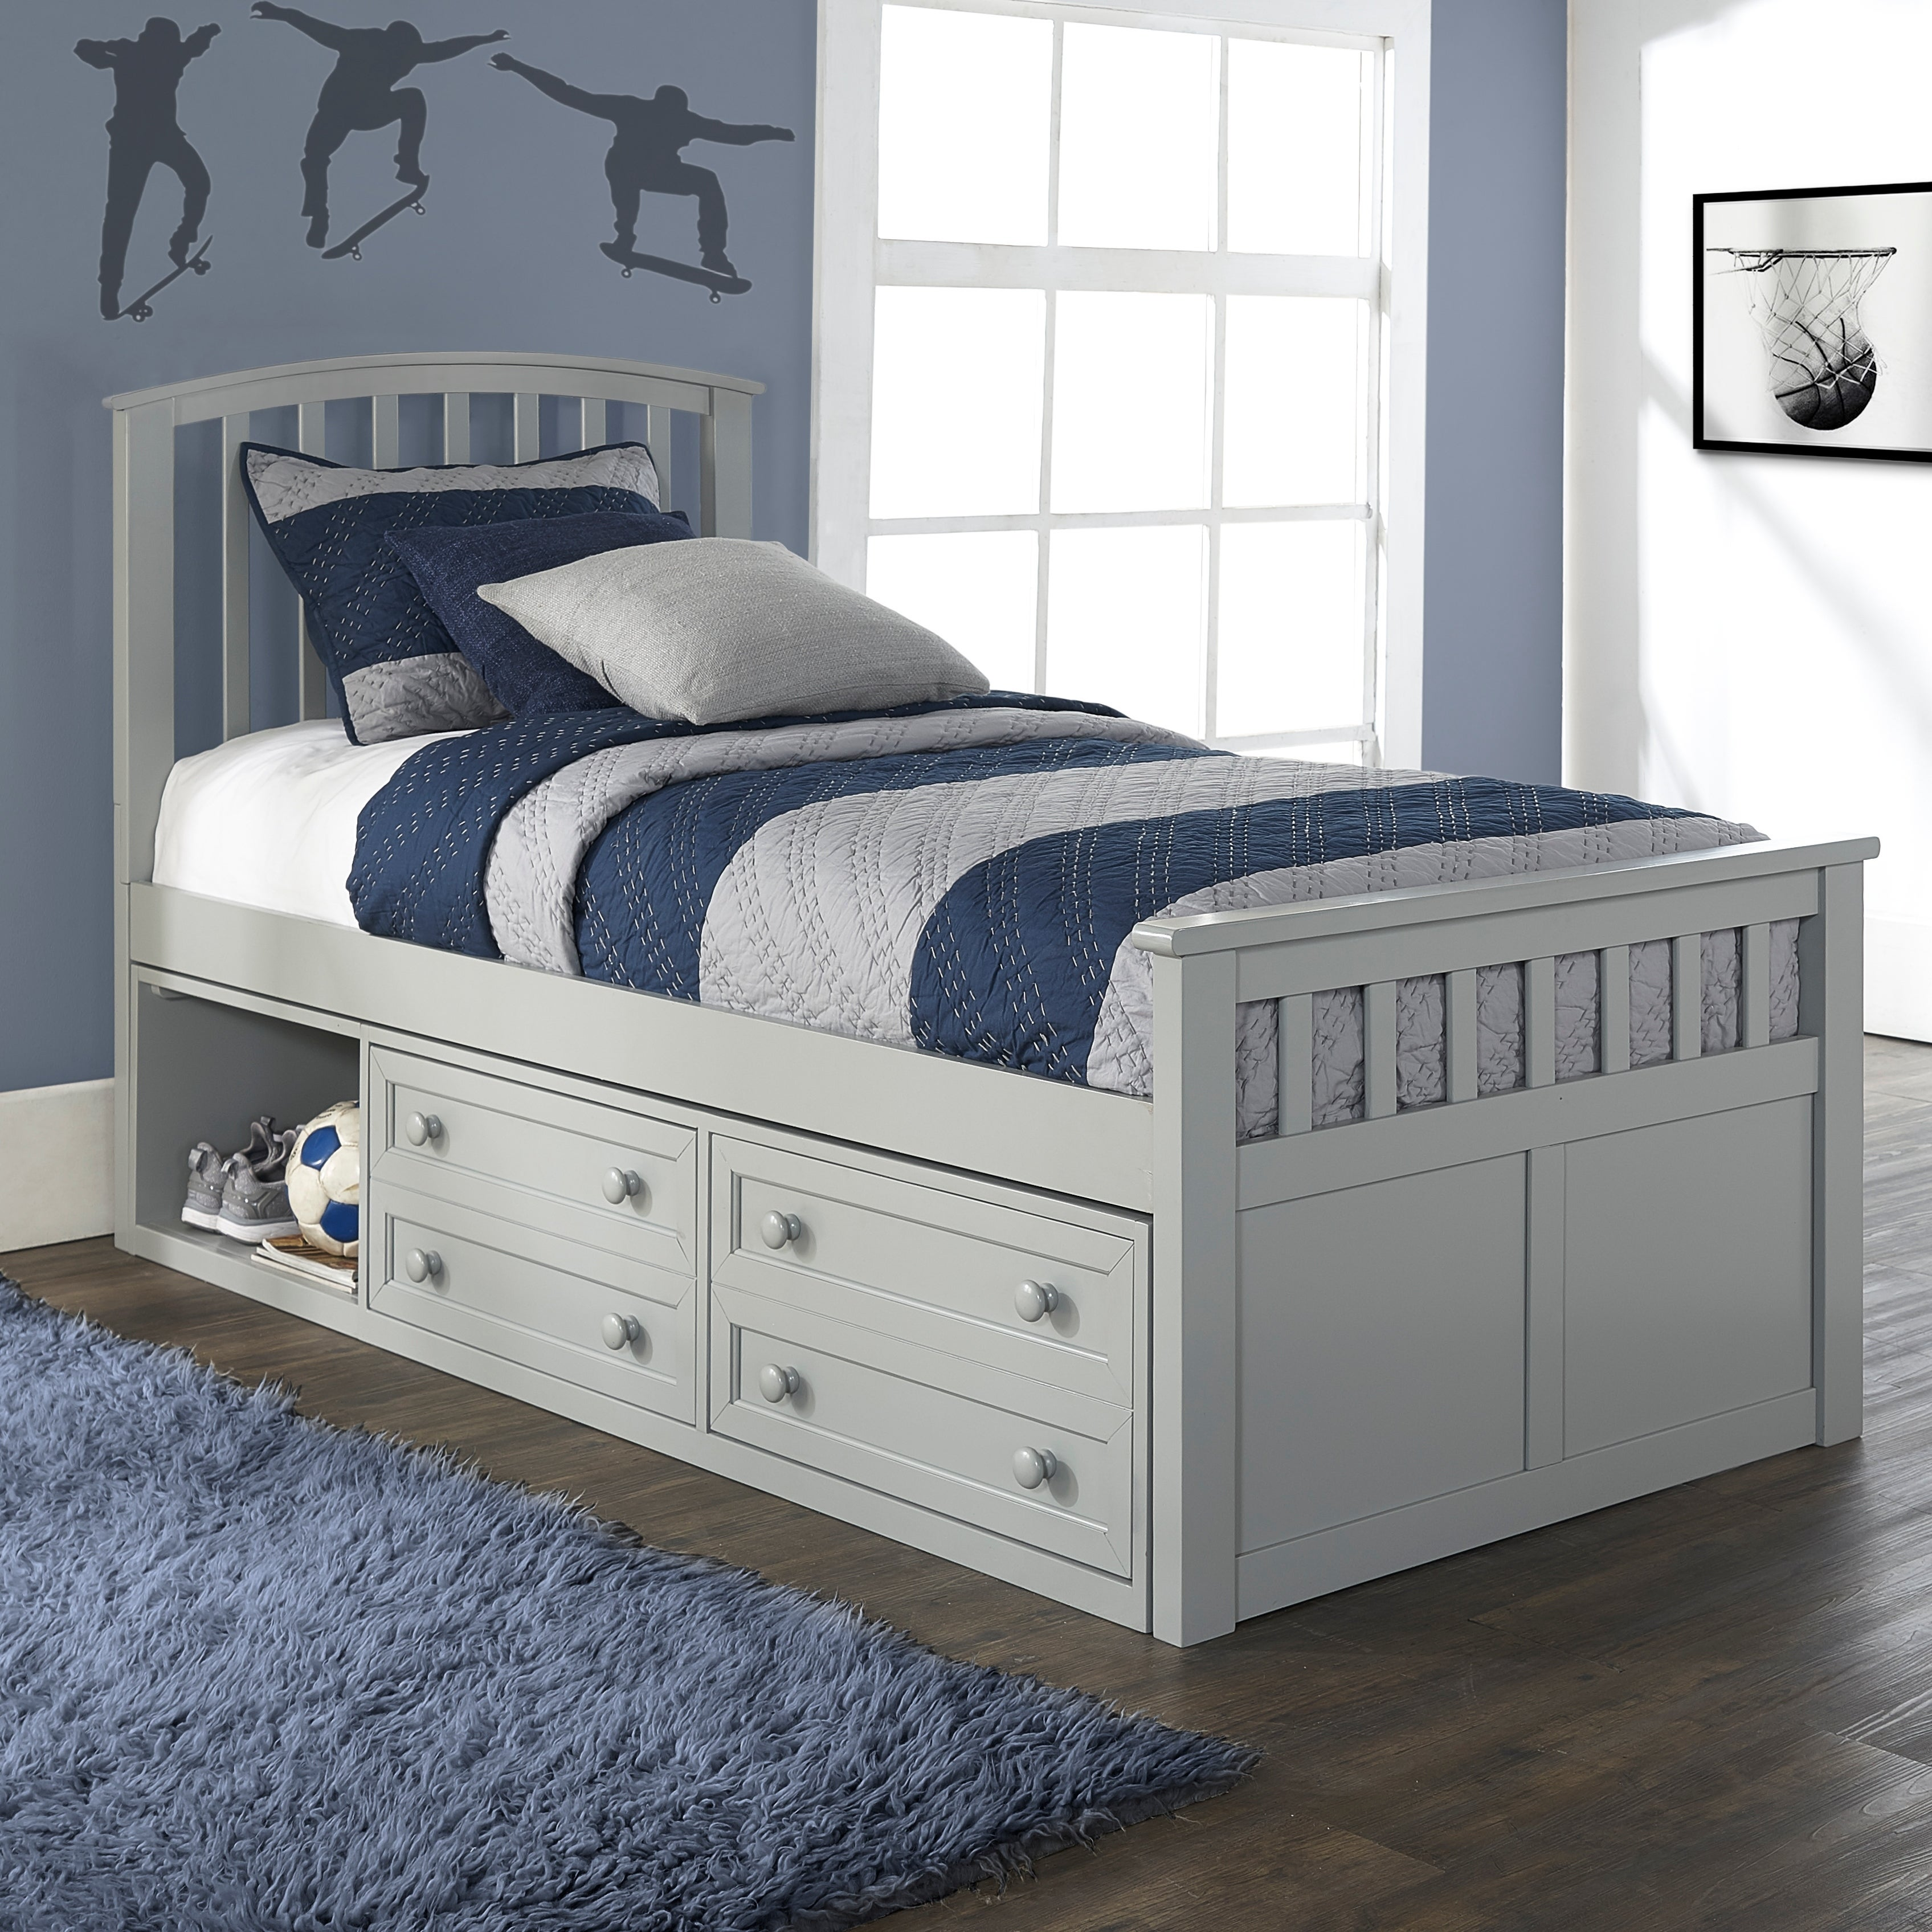 Charlie Wood Twin Size Captain S Bed With Storage Gray Kids